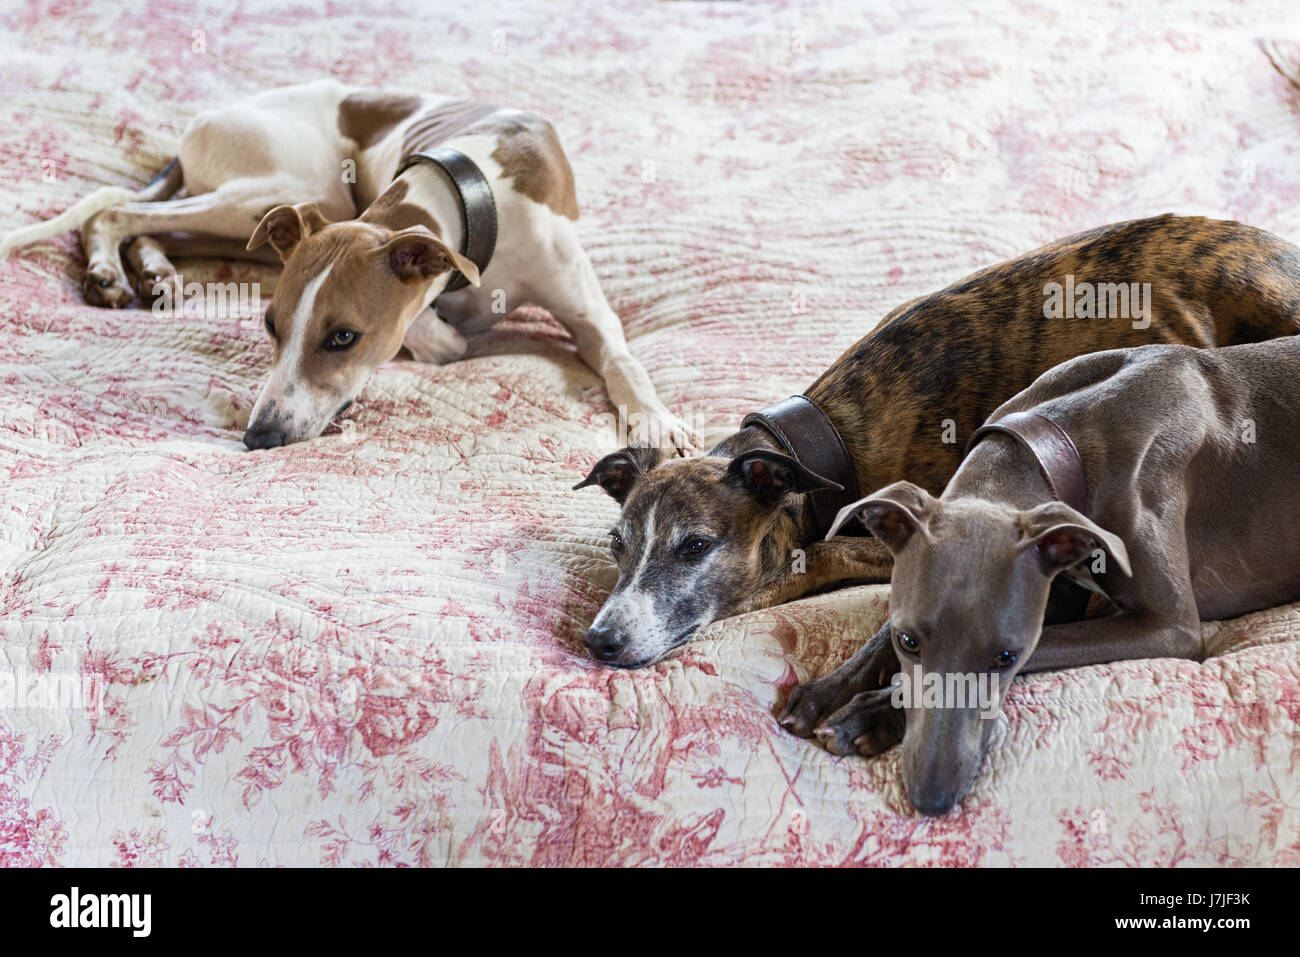 Three smooth-coated lurchers on a quilted toile de jouy bed cover - Stock Image